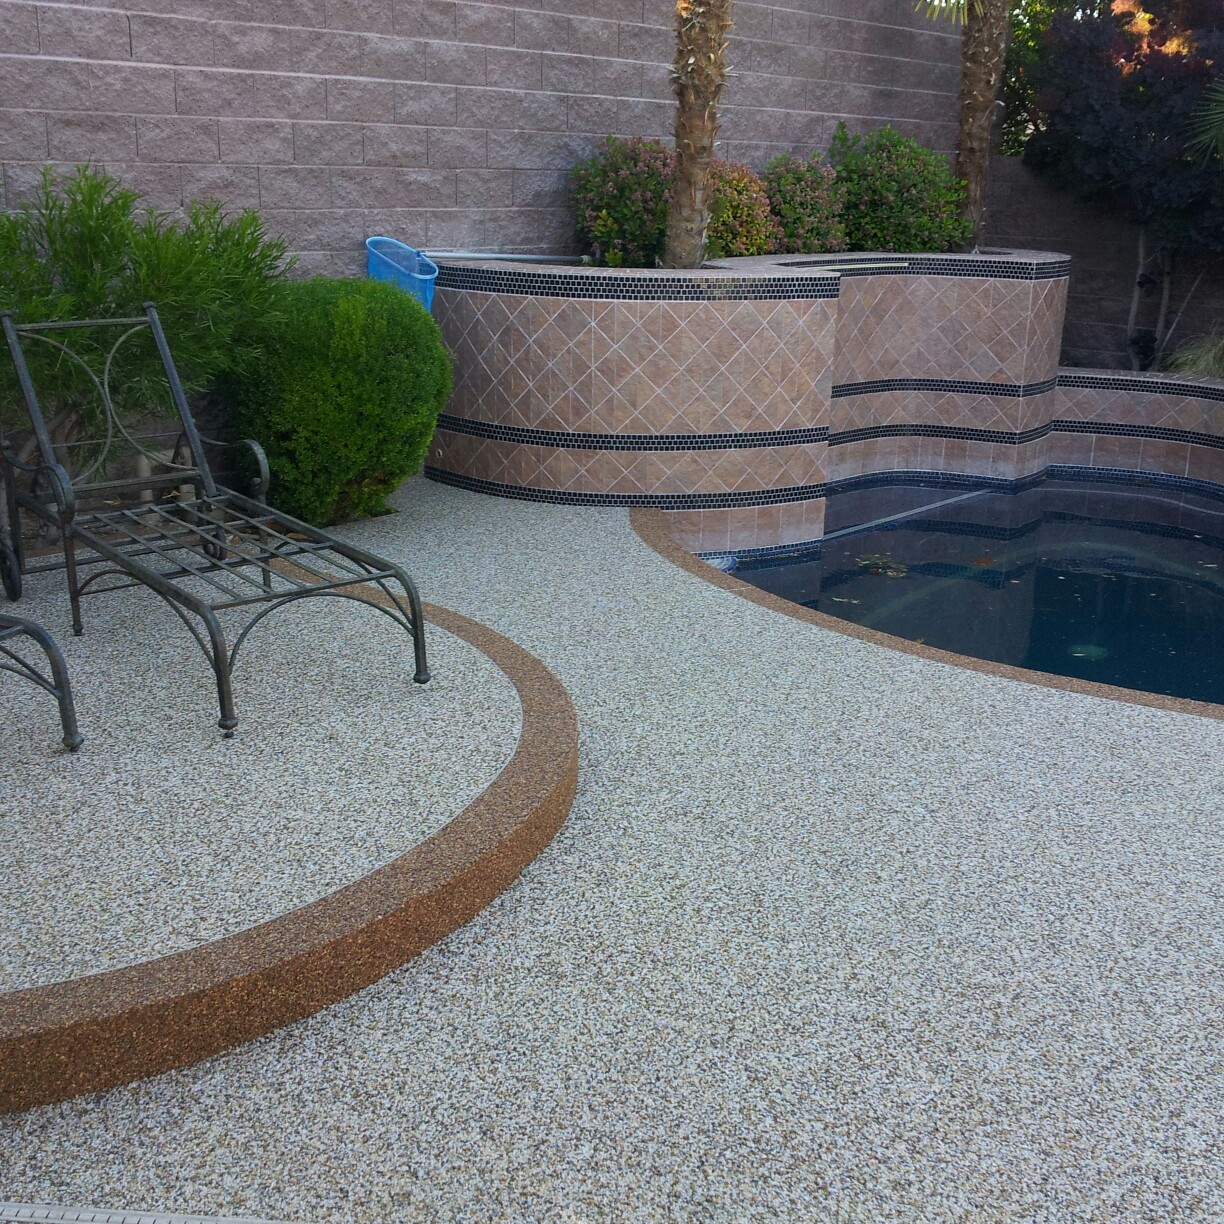 We Just Finished A New Pool Deck Installation Of Pebble Stone Coatings Epoxy Rock Over An